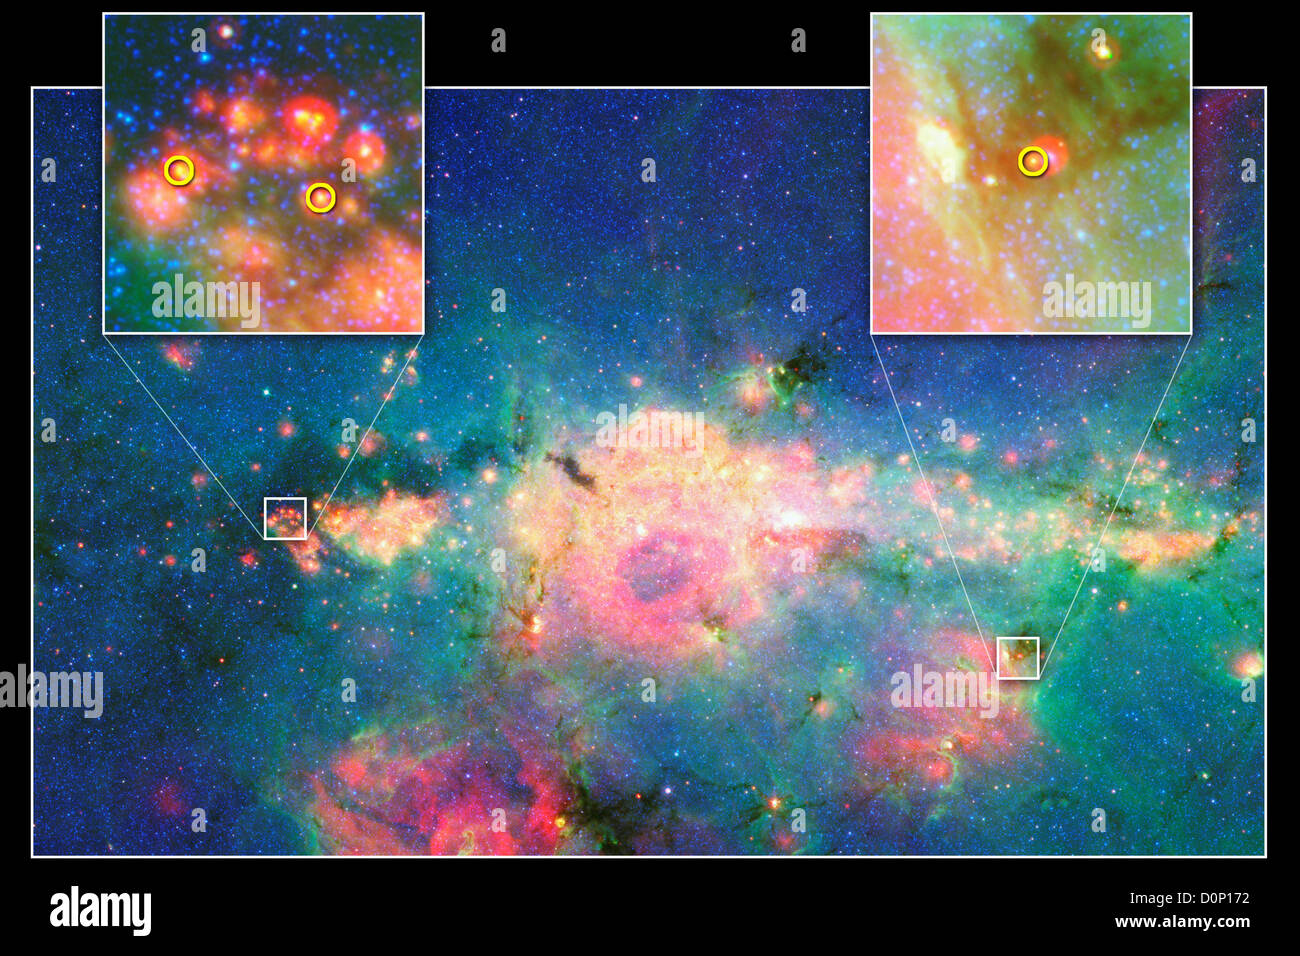 Newborn Stars Near Galactic Core - Stock Image